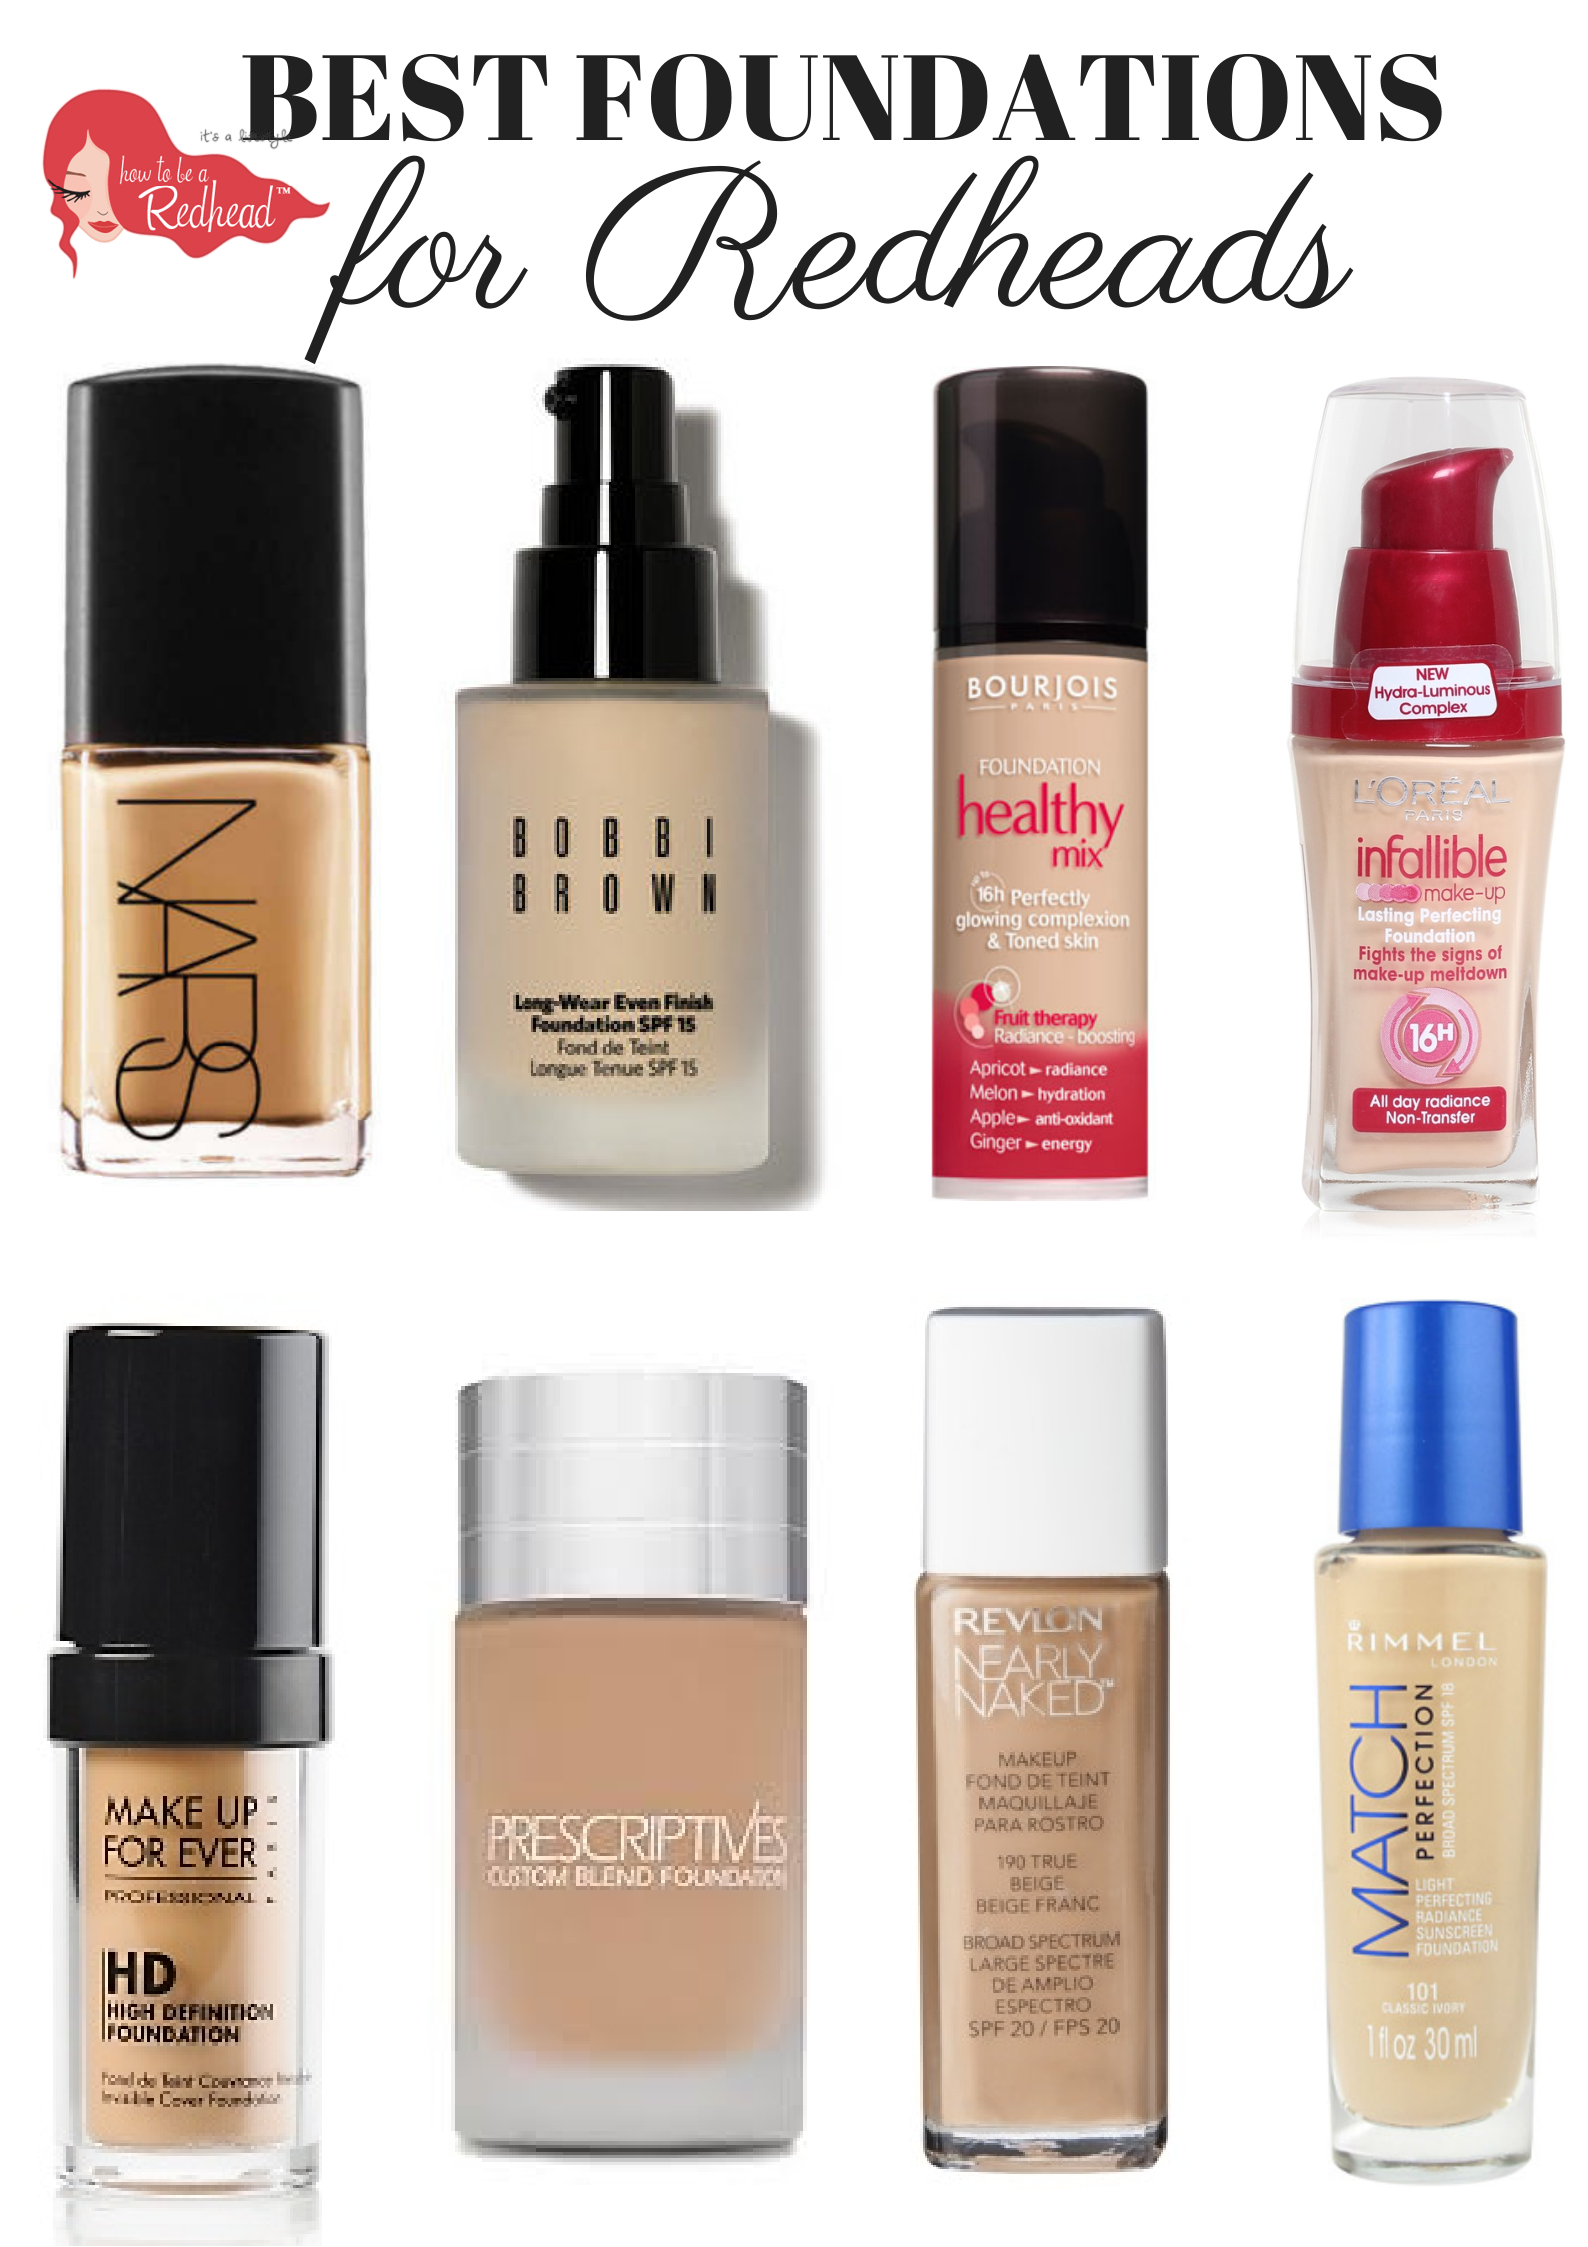 Save or Splurge? The Top Foundation Picks for Redheads